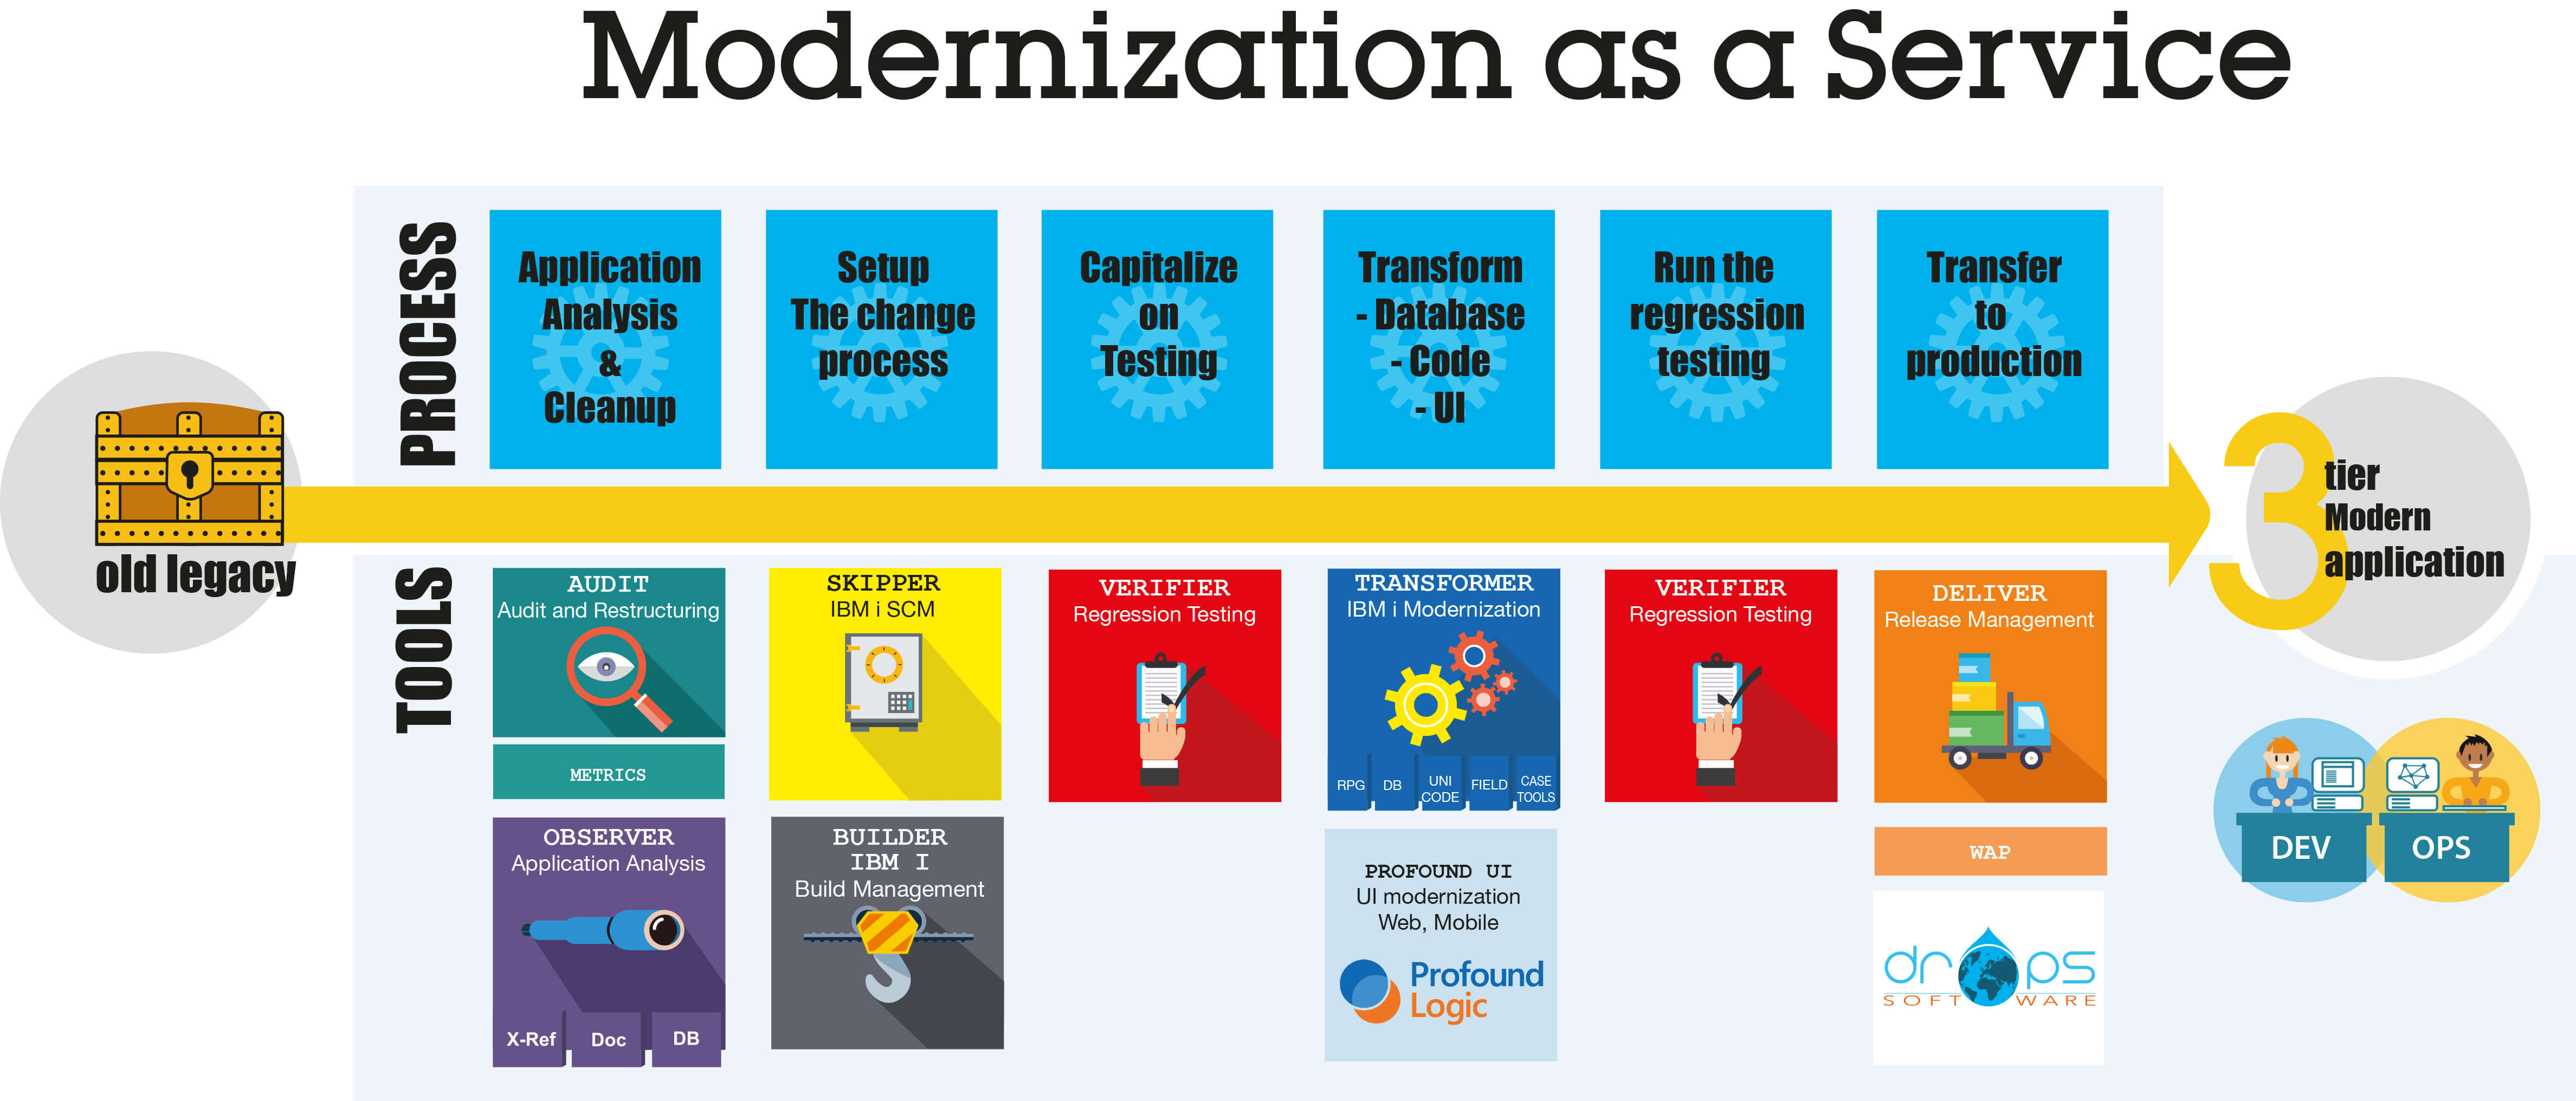 Modernization as a Service Tools and Process